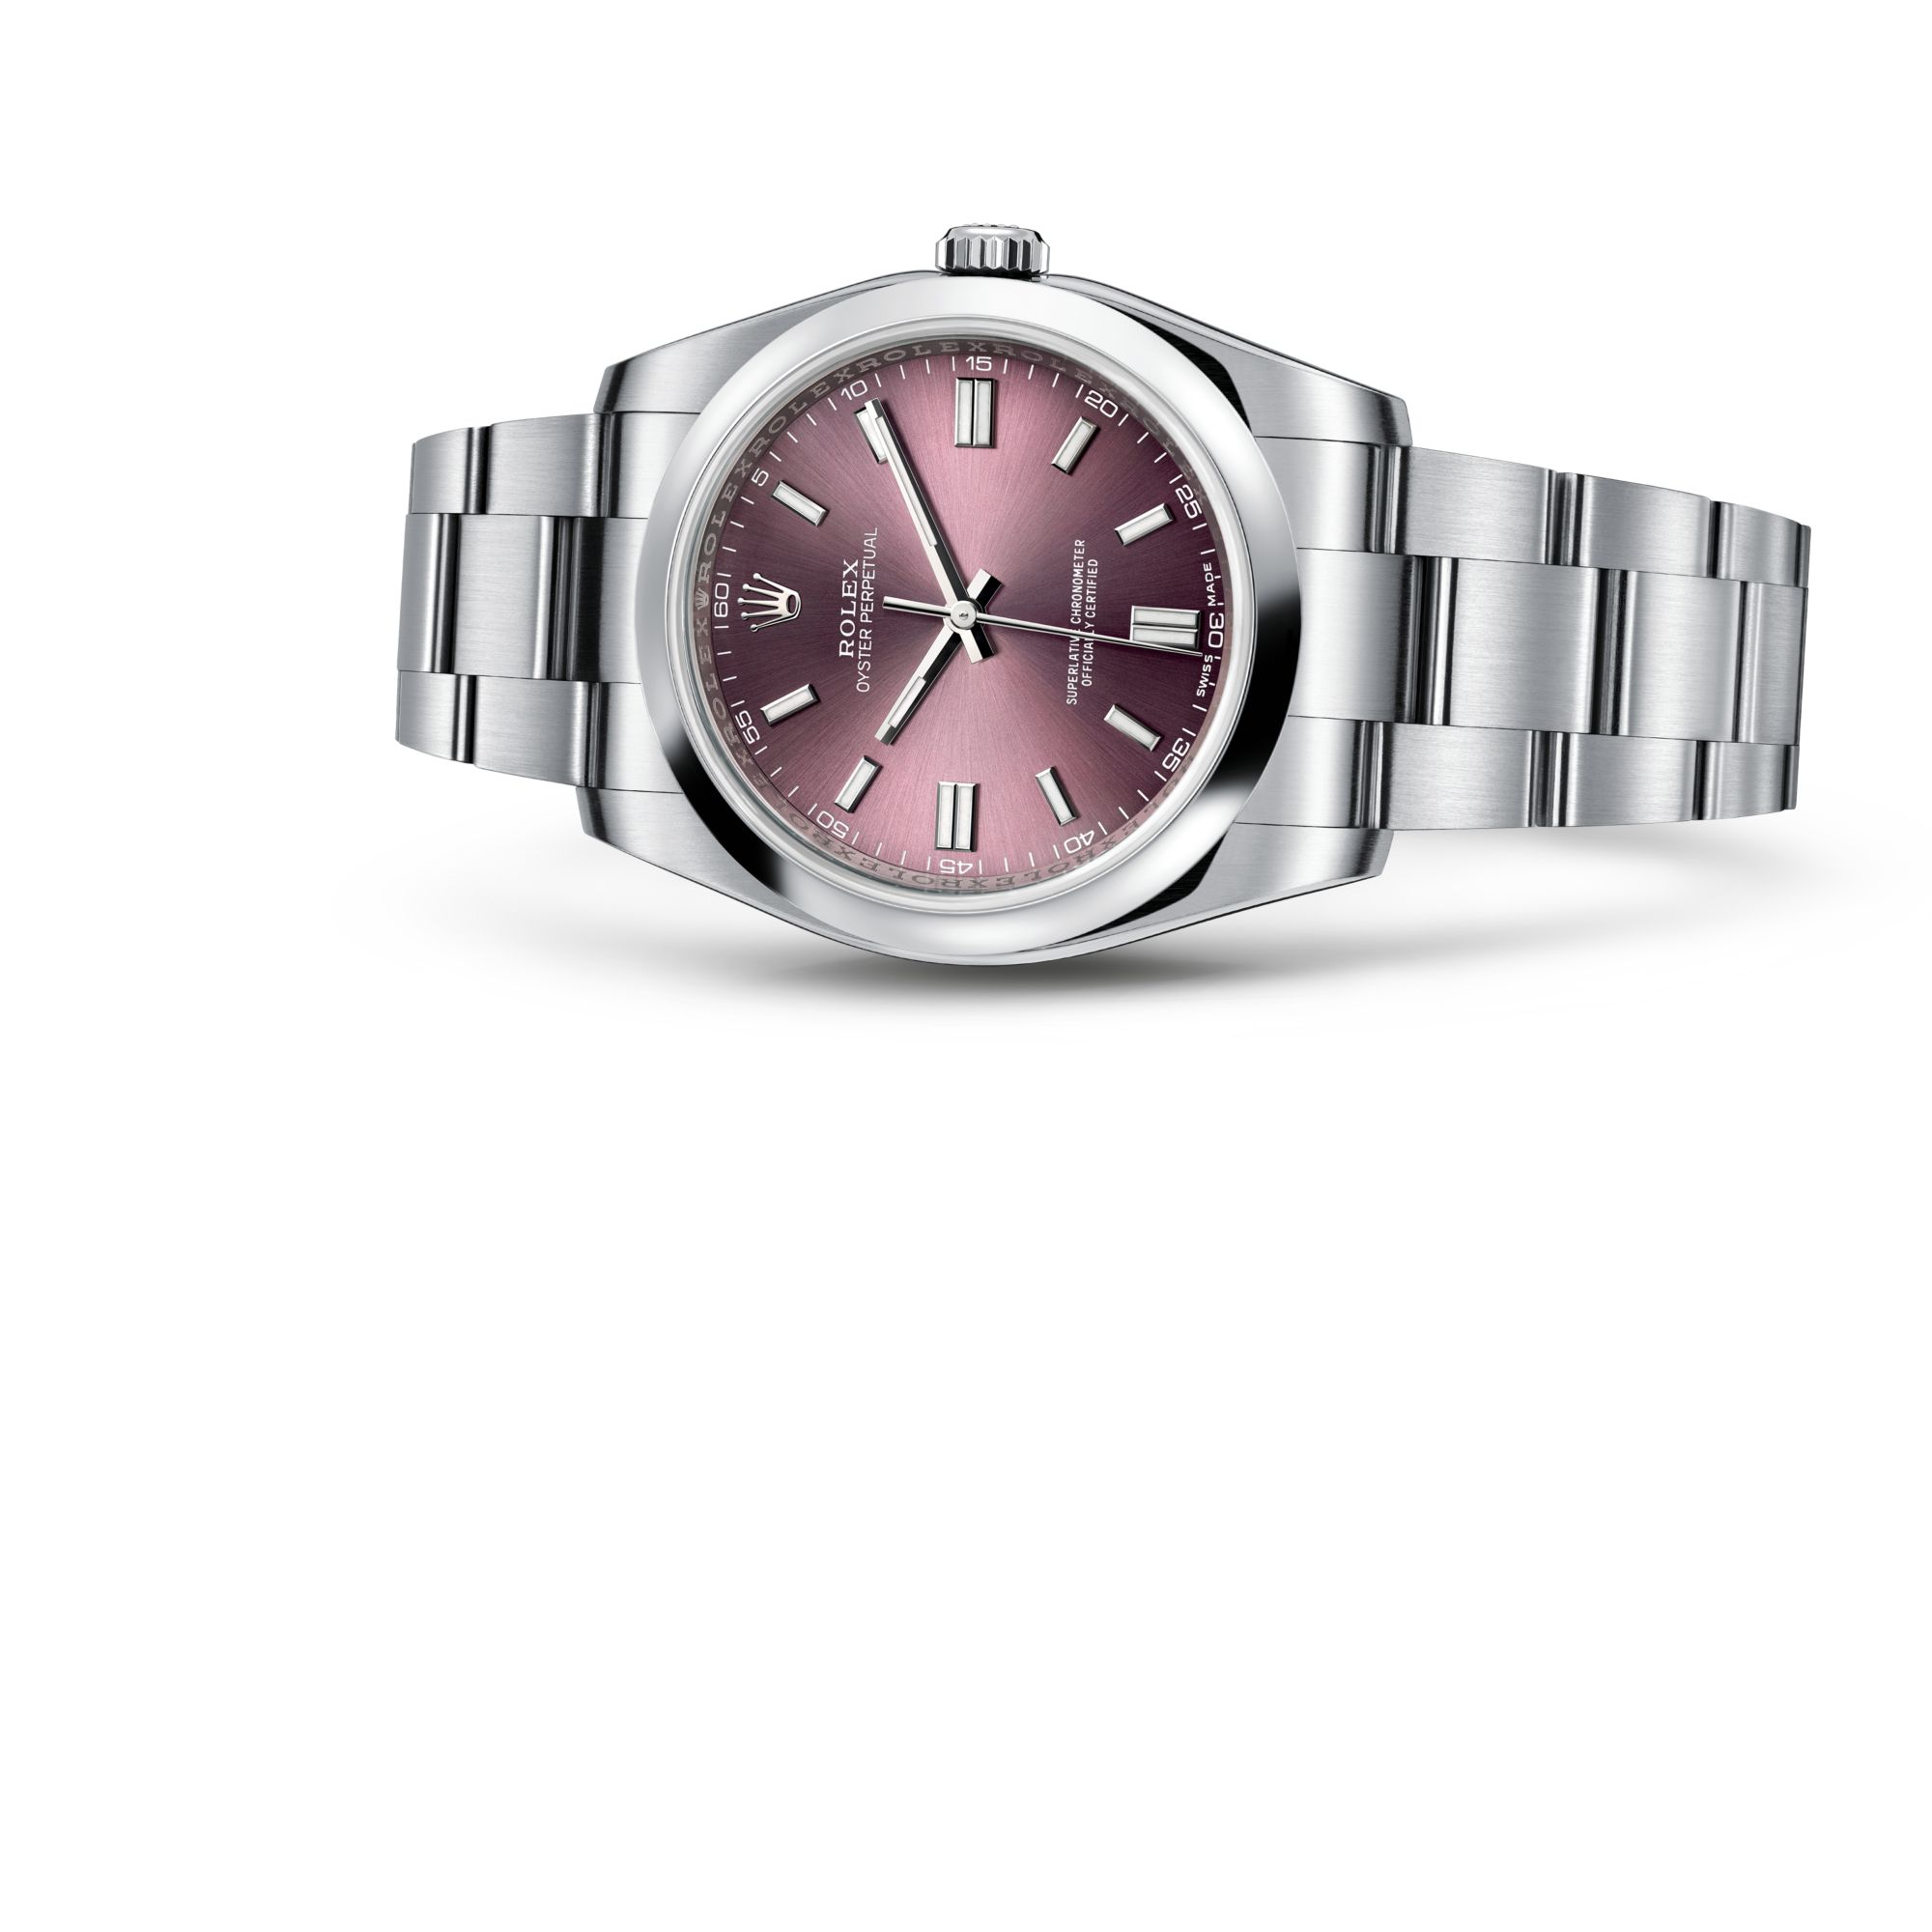 Rolex Oyster Perpetual 36 M116000-0010